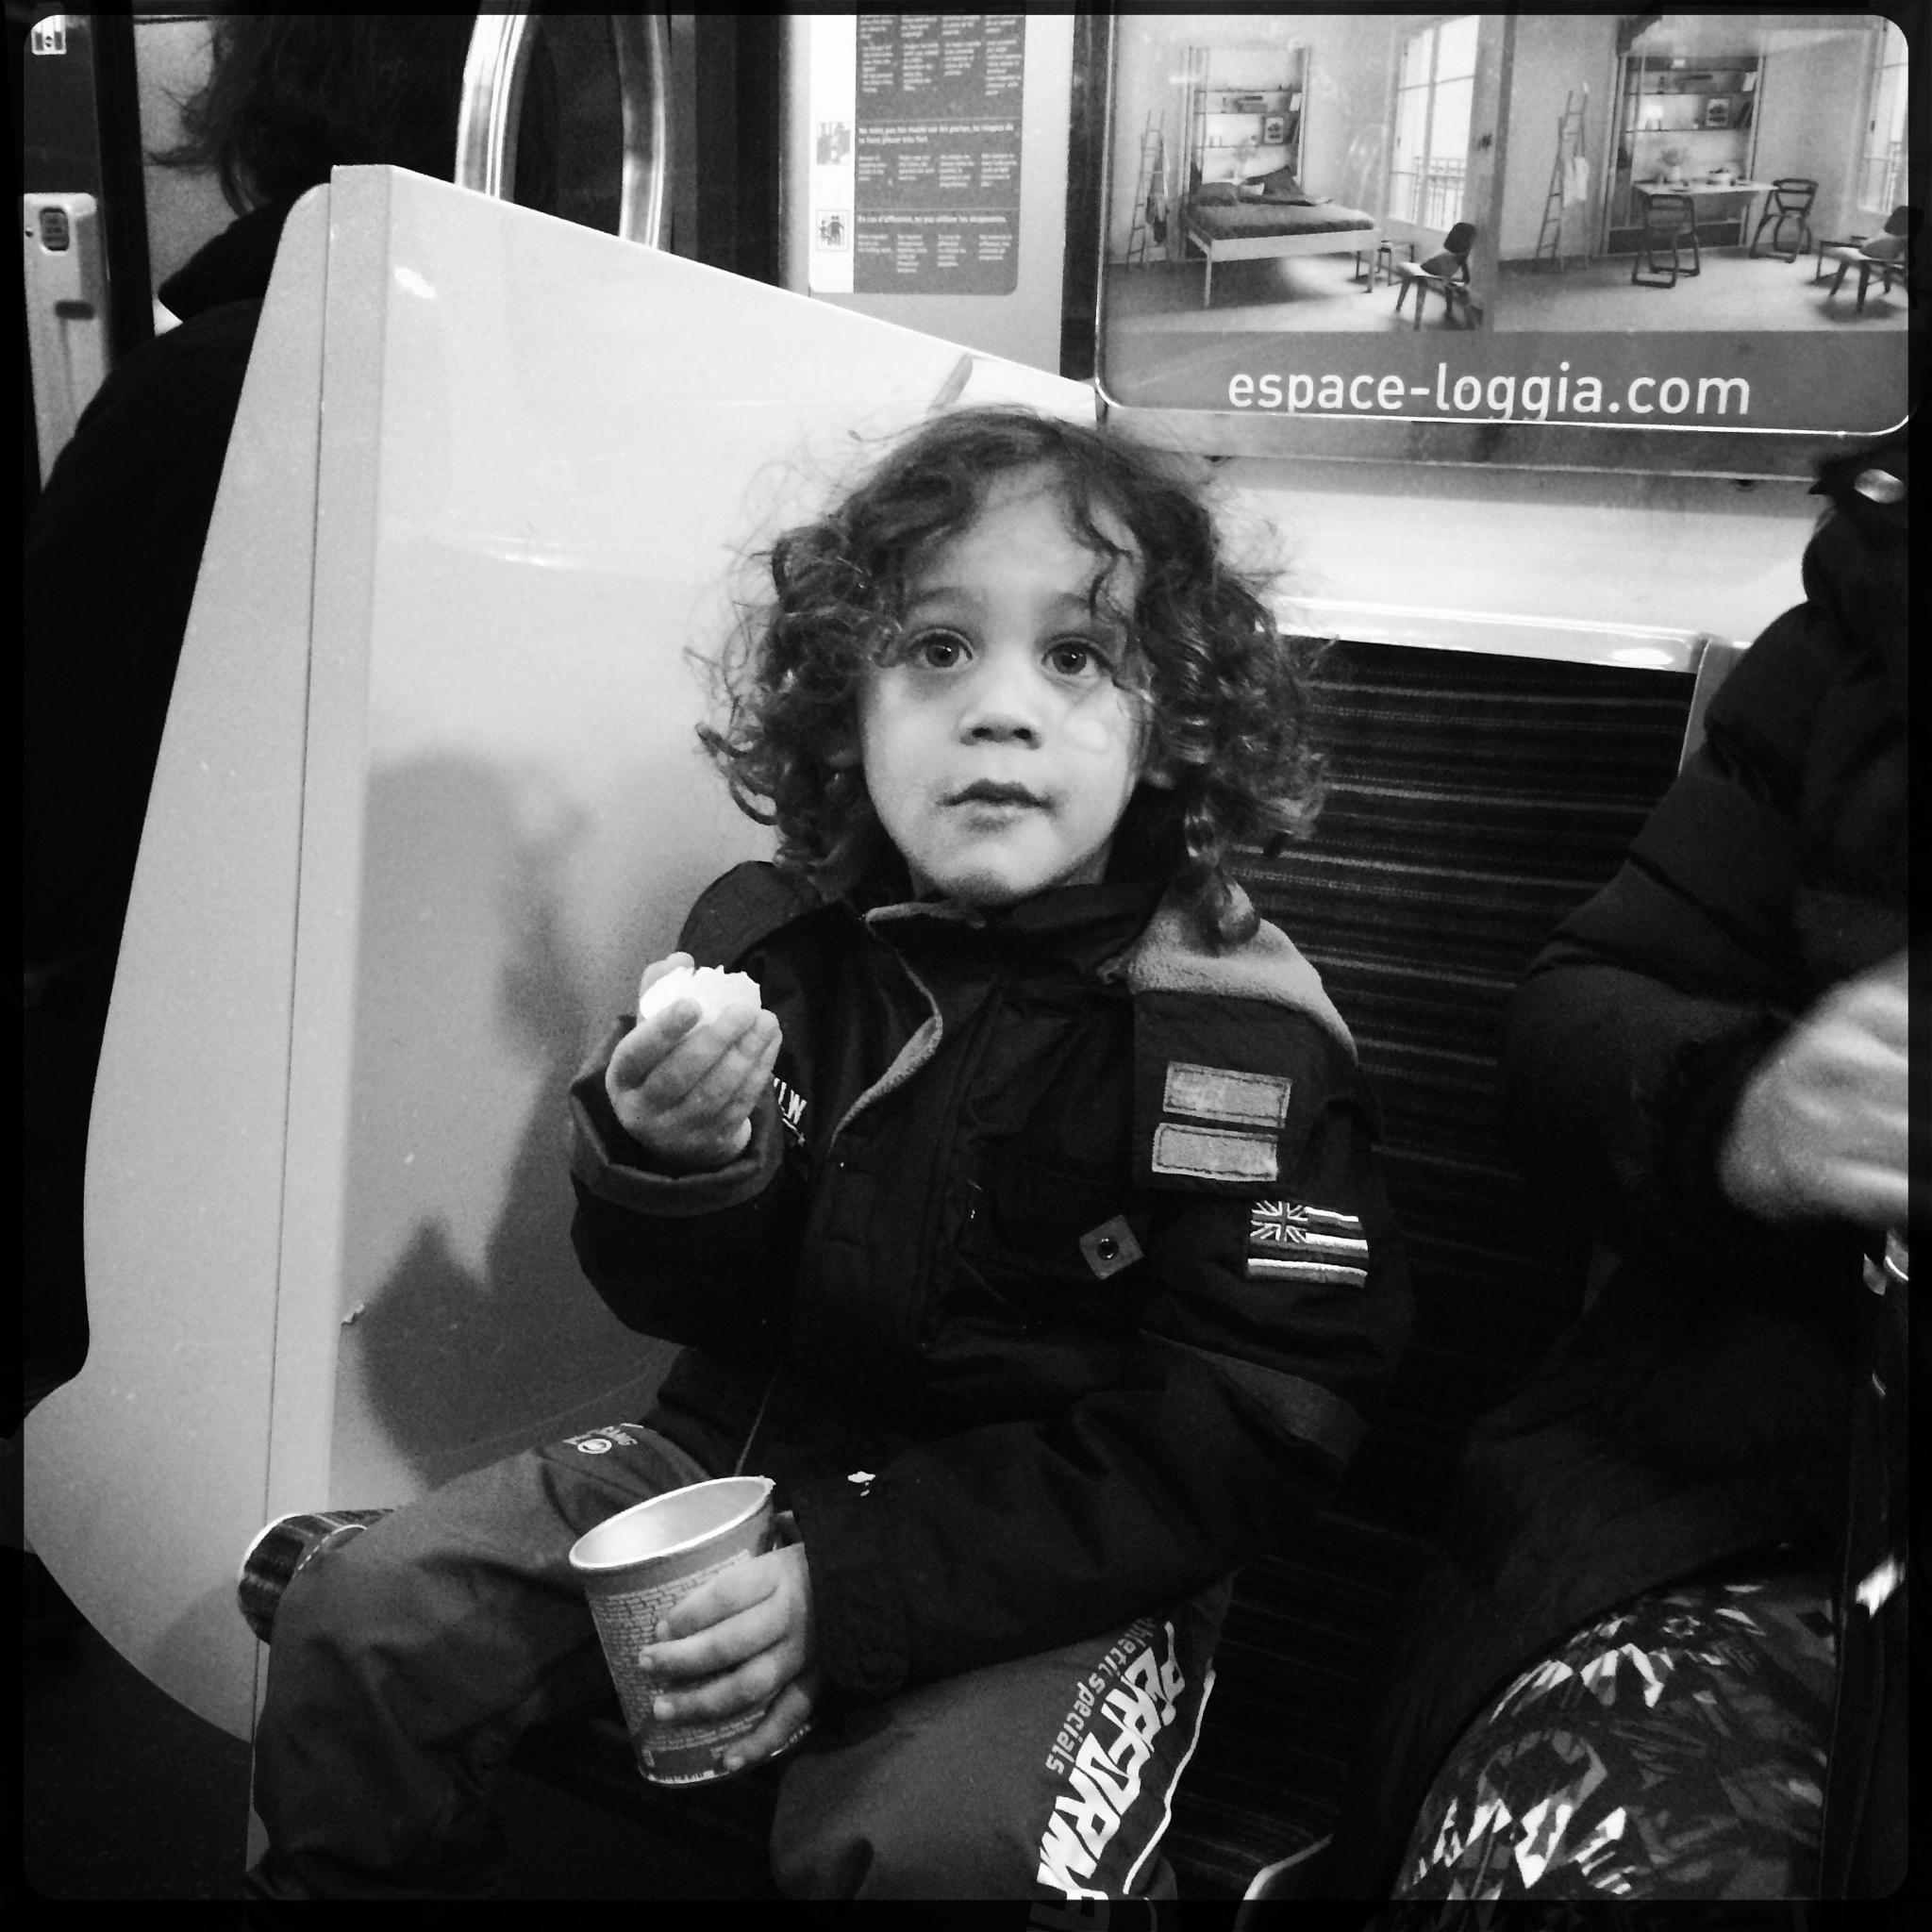 Snacking on the metro in Paris by parisfind